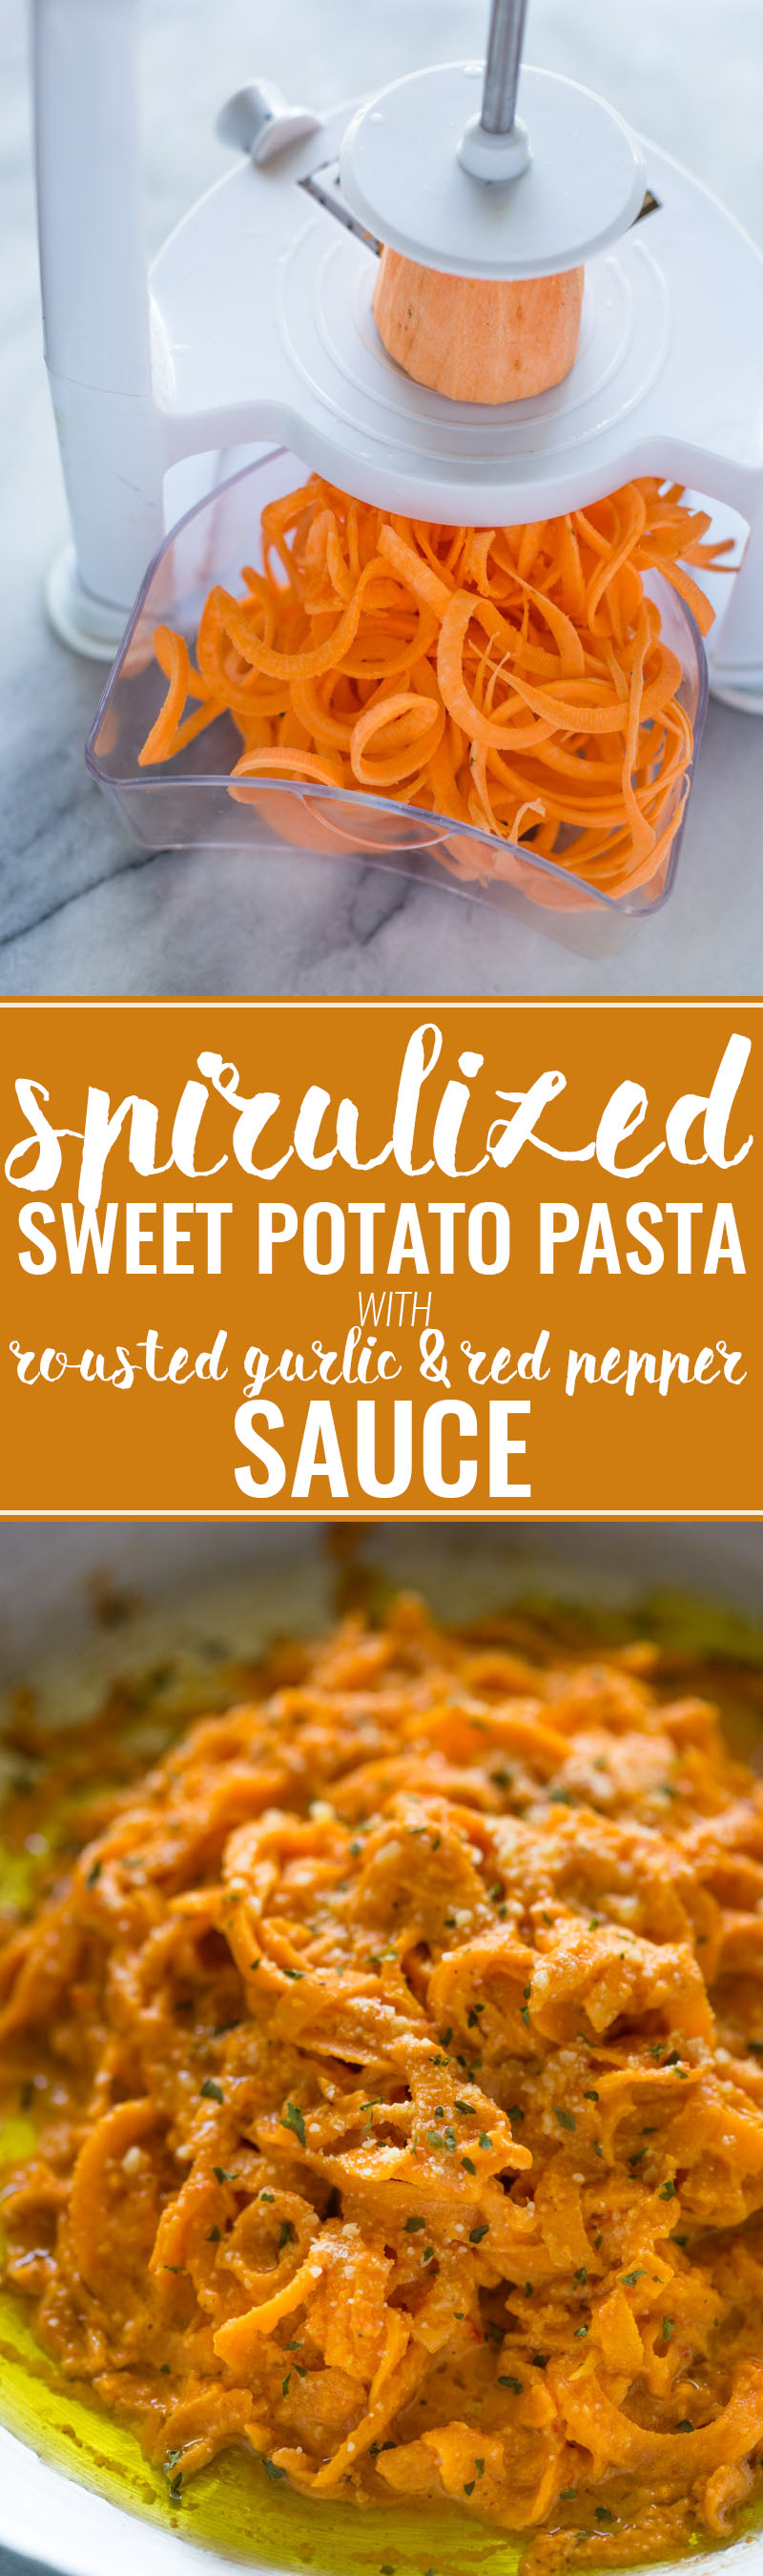 "Spiralized Sweet Potato ""Pasta"" with Roasted Garlic Red Pepper Cream Sauce"